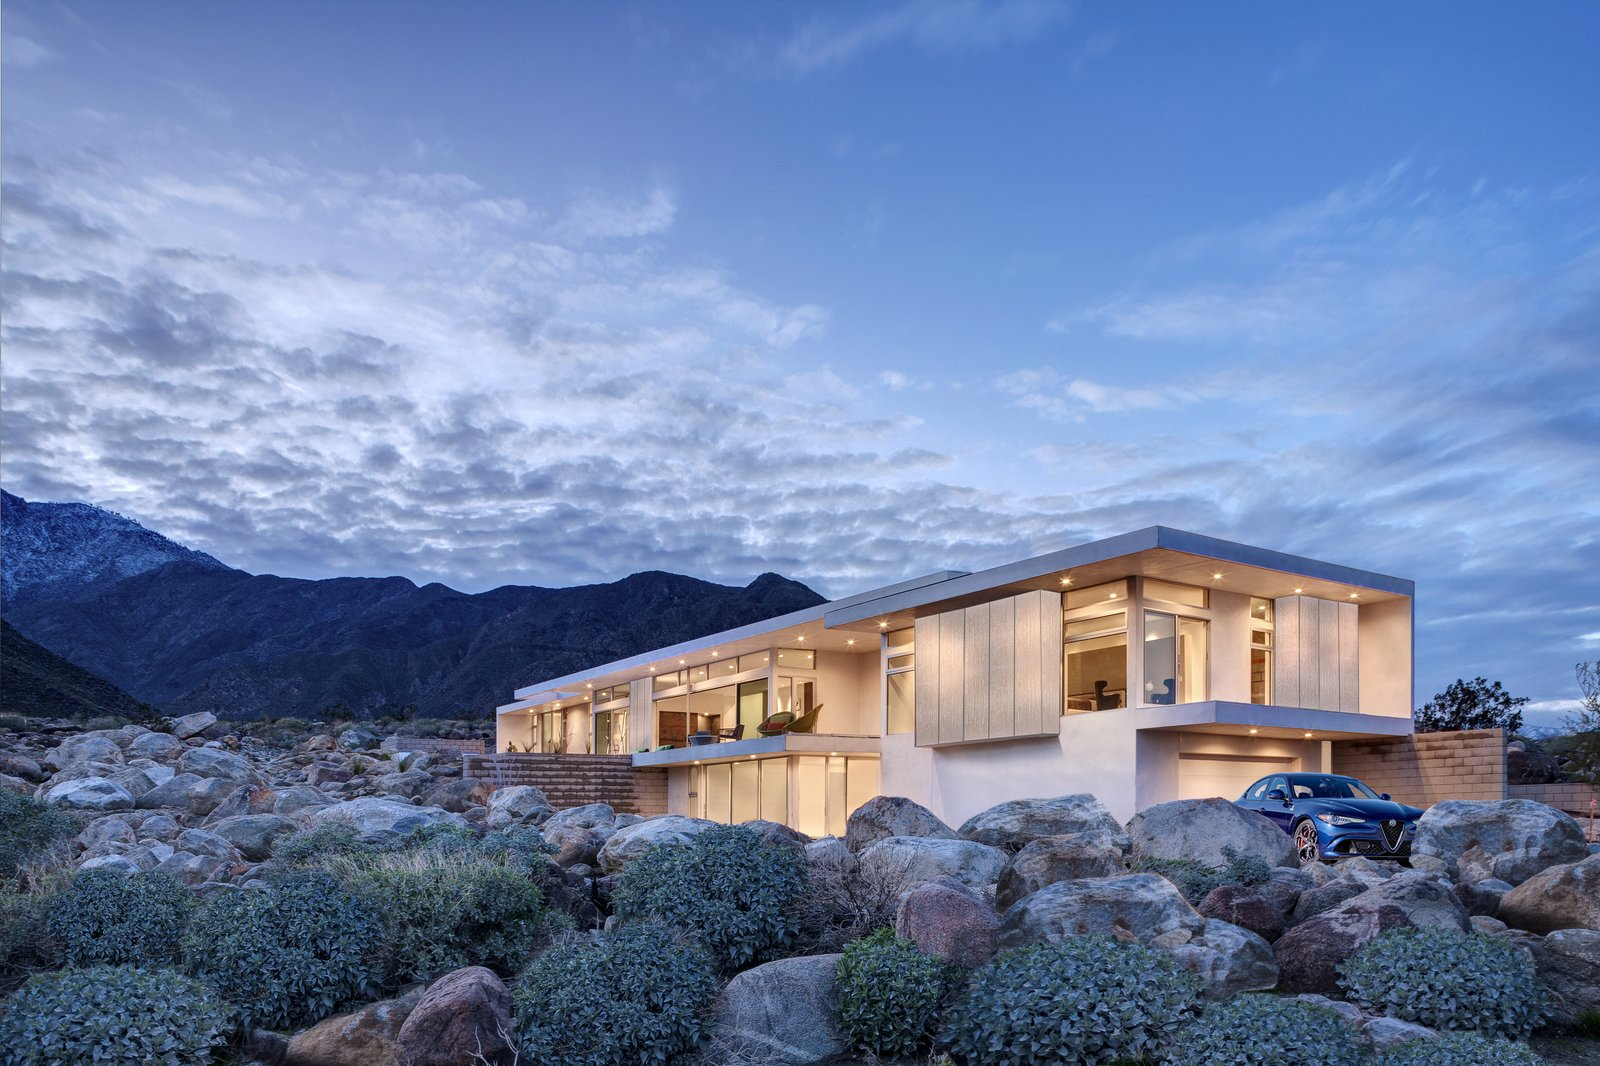 Desert palisades chino canyon modern home in palm springs california on dwell - Villa decor desert o architecture ...